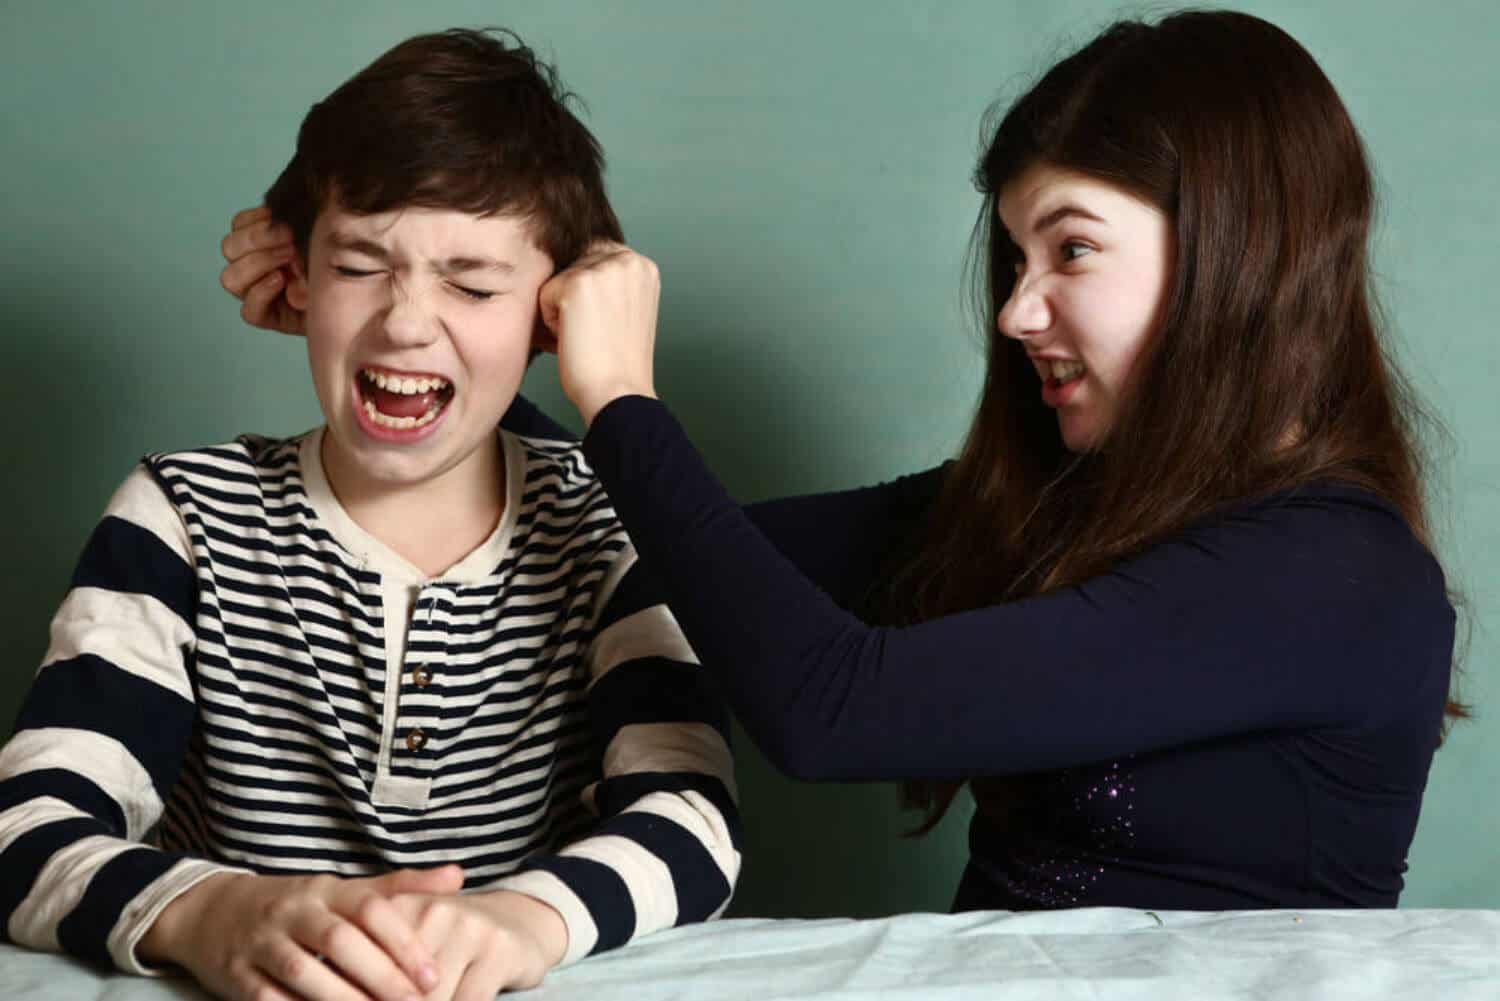 A girl pulling on her brother's ears.